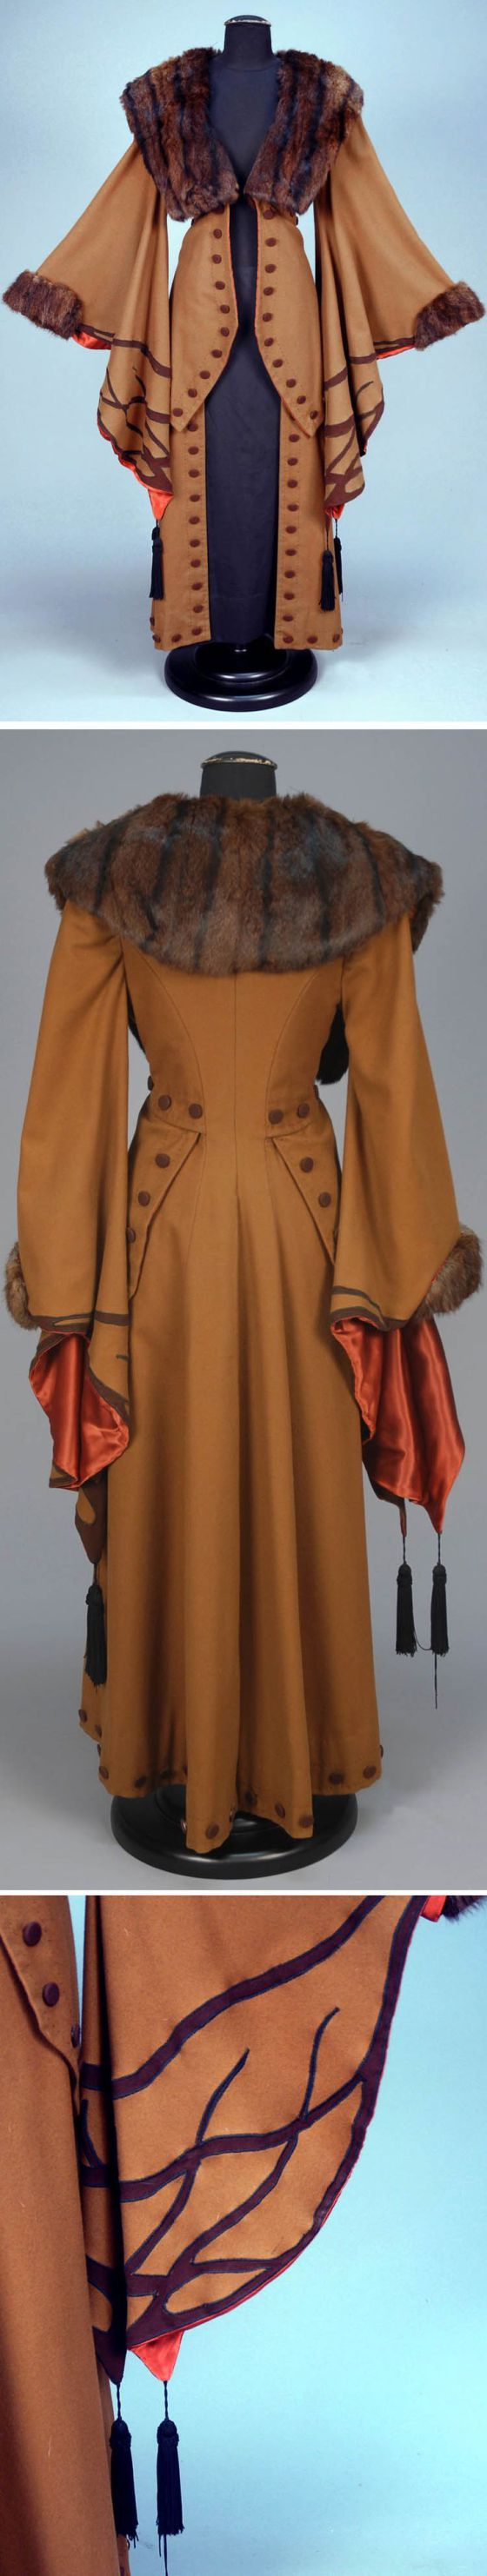 Wool, with those sleeves appliquéd in darker brown with black silk tassels, fur collar and cuff, contrasting faux button trim, and satin lining. Early 20th century